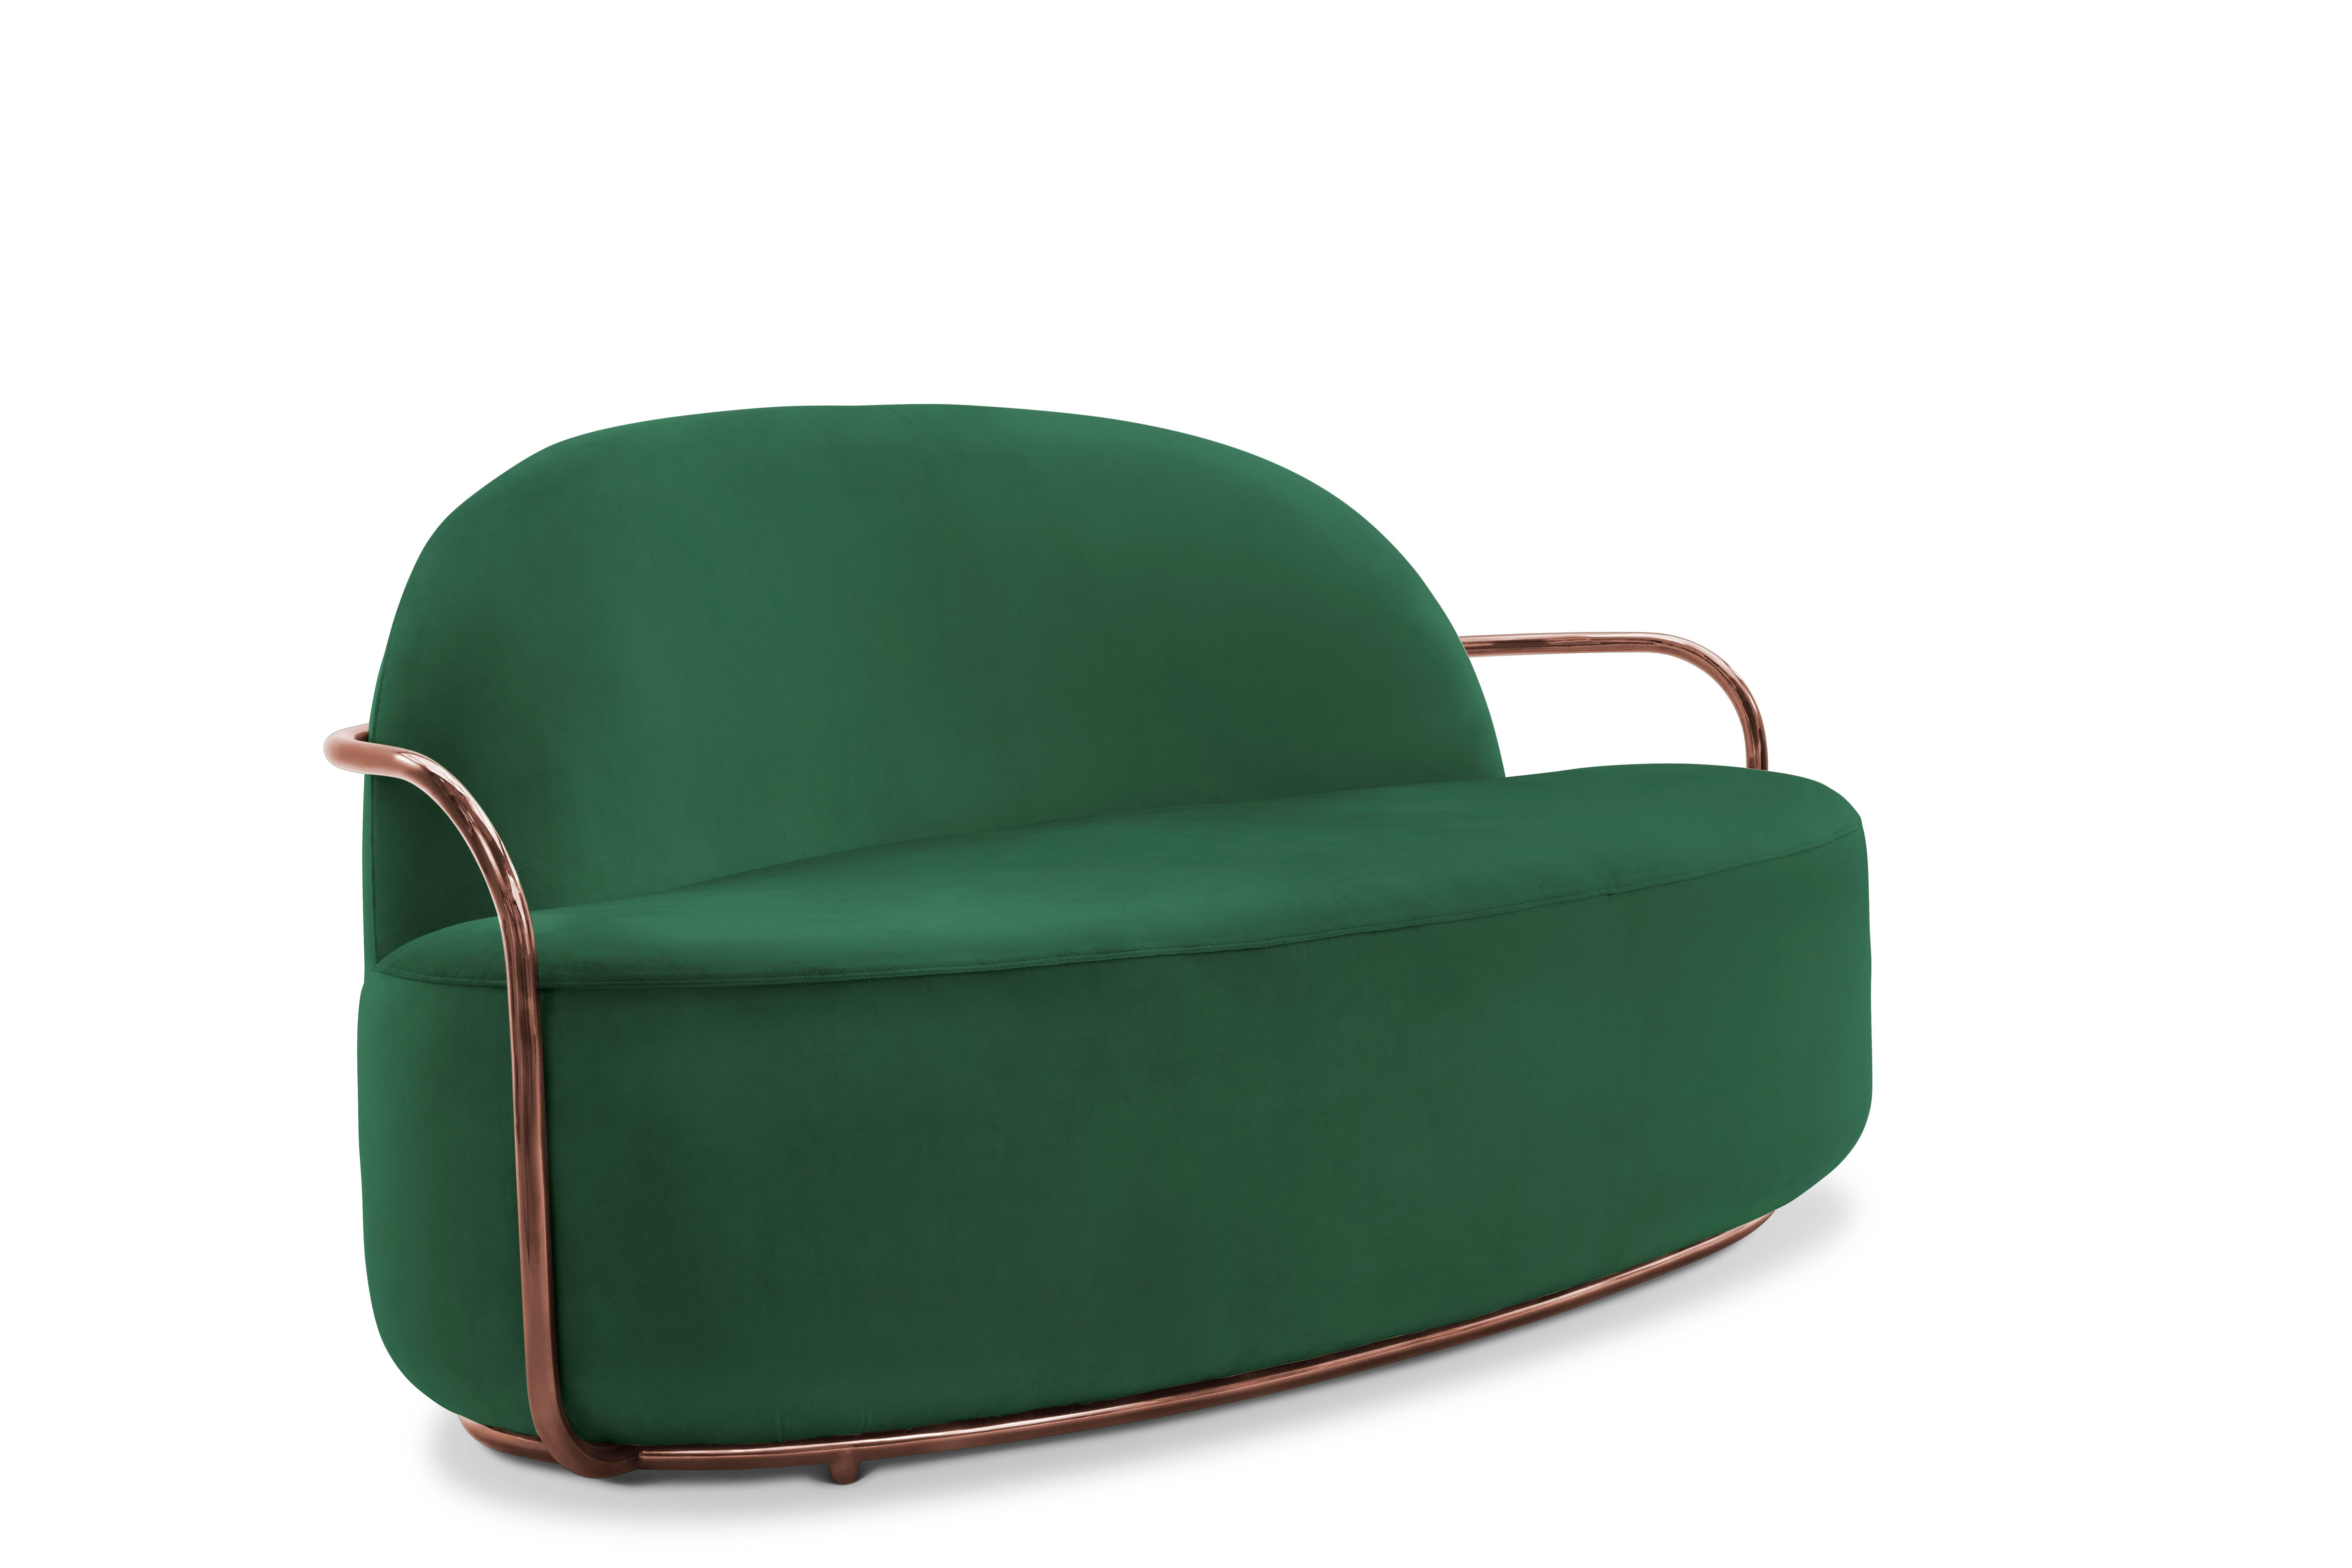 Orion Sofa Green By Nika Zupanc For Scarlet Splendour For Sale At